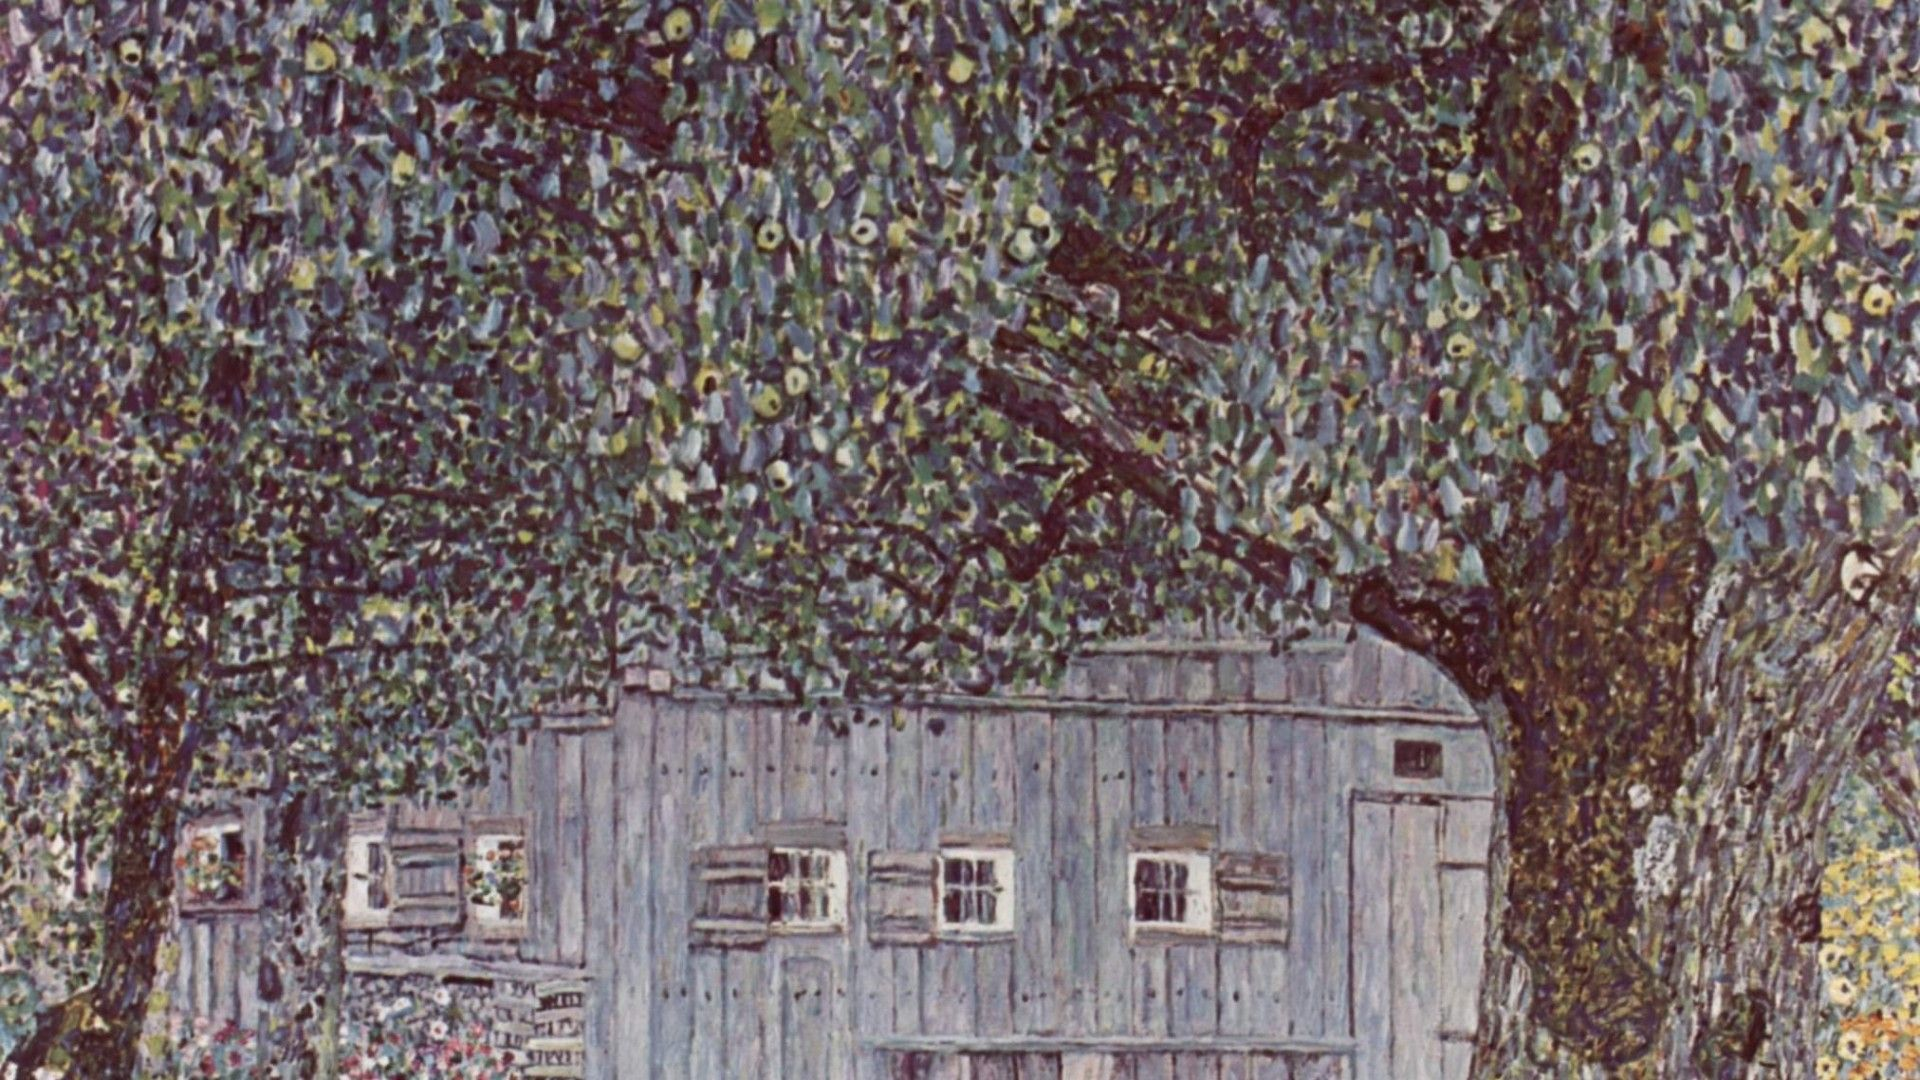 1920x1080 Painting of Gustav Klimt - Cabin in the woods wallpapers and images ...